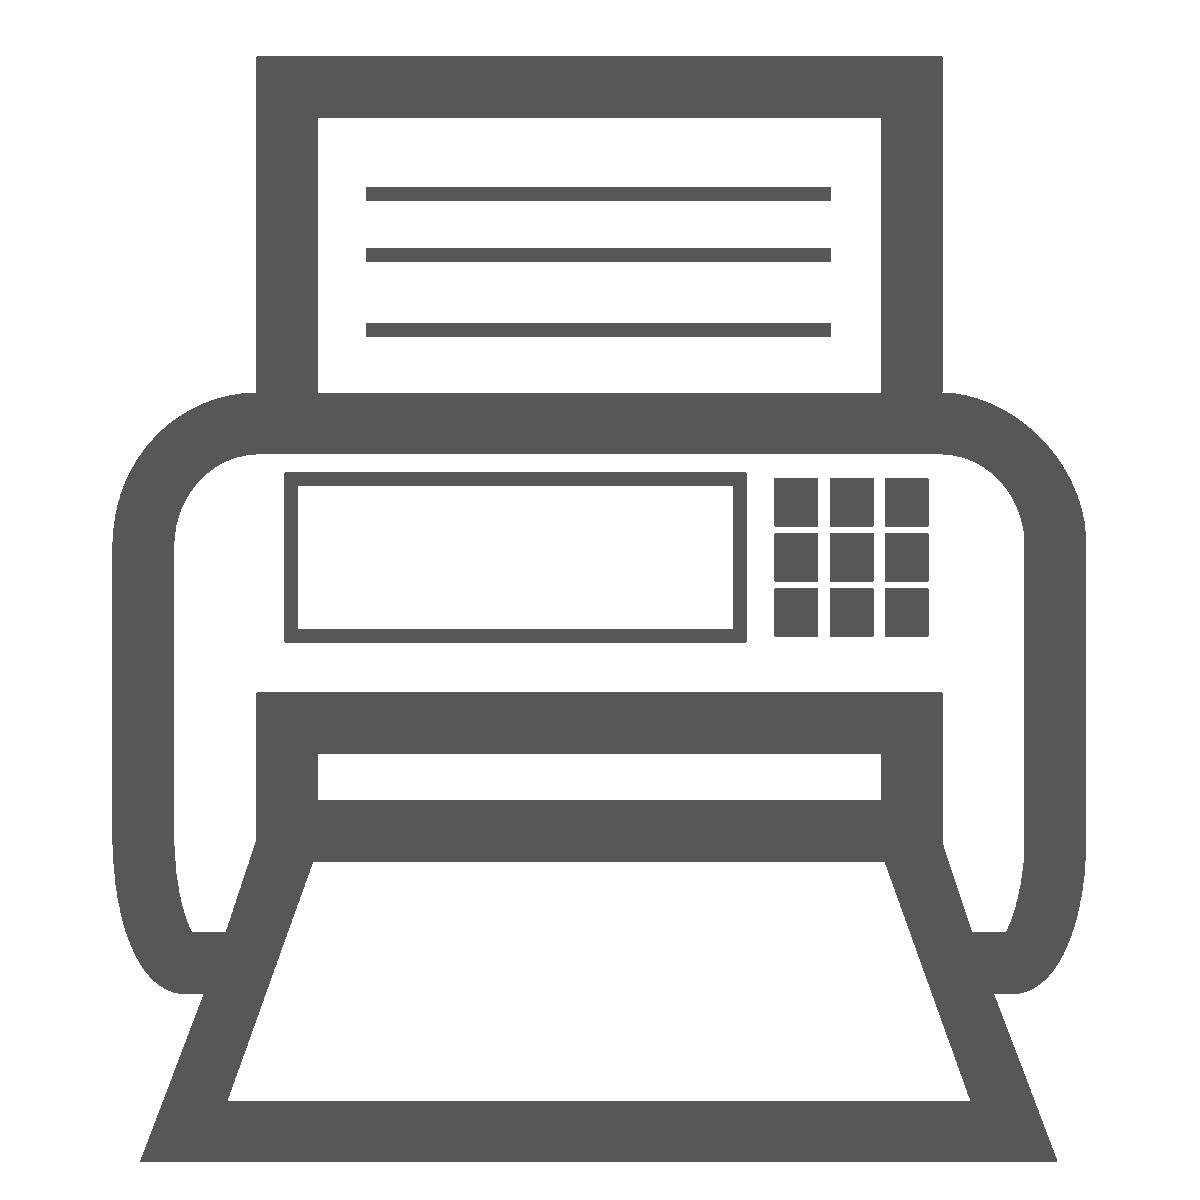 fax-icon-png-4909.png